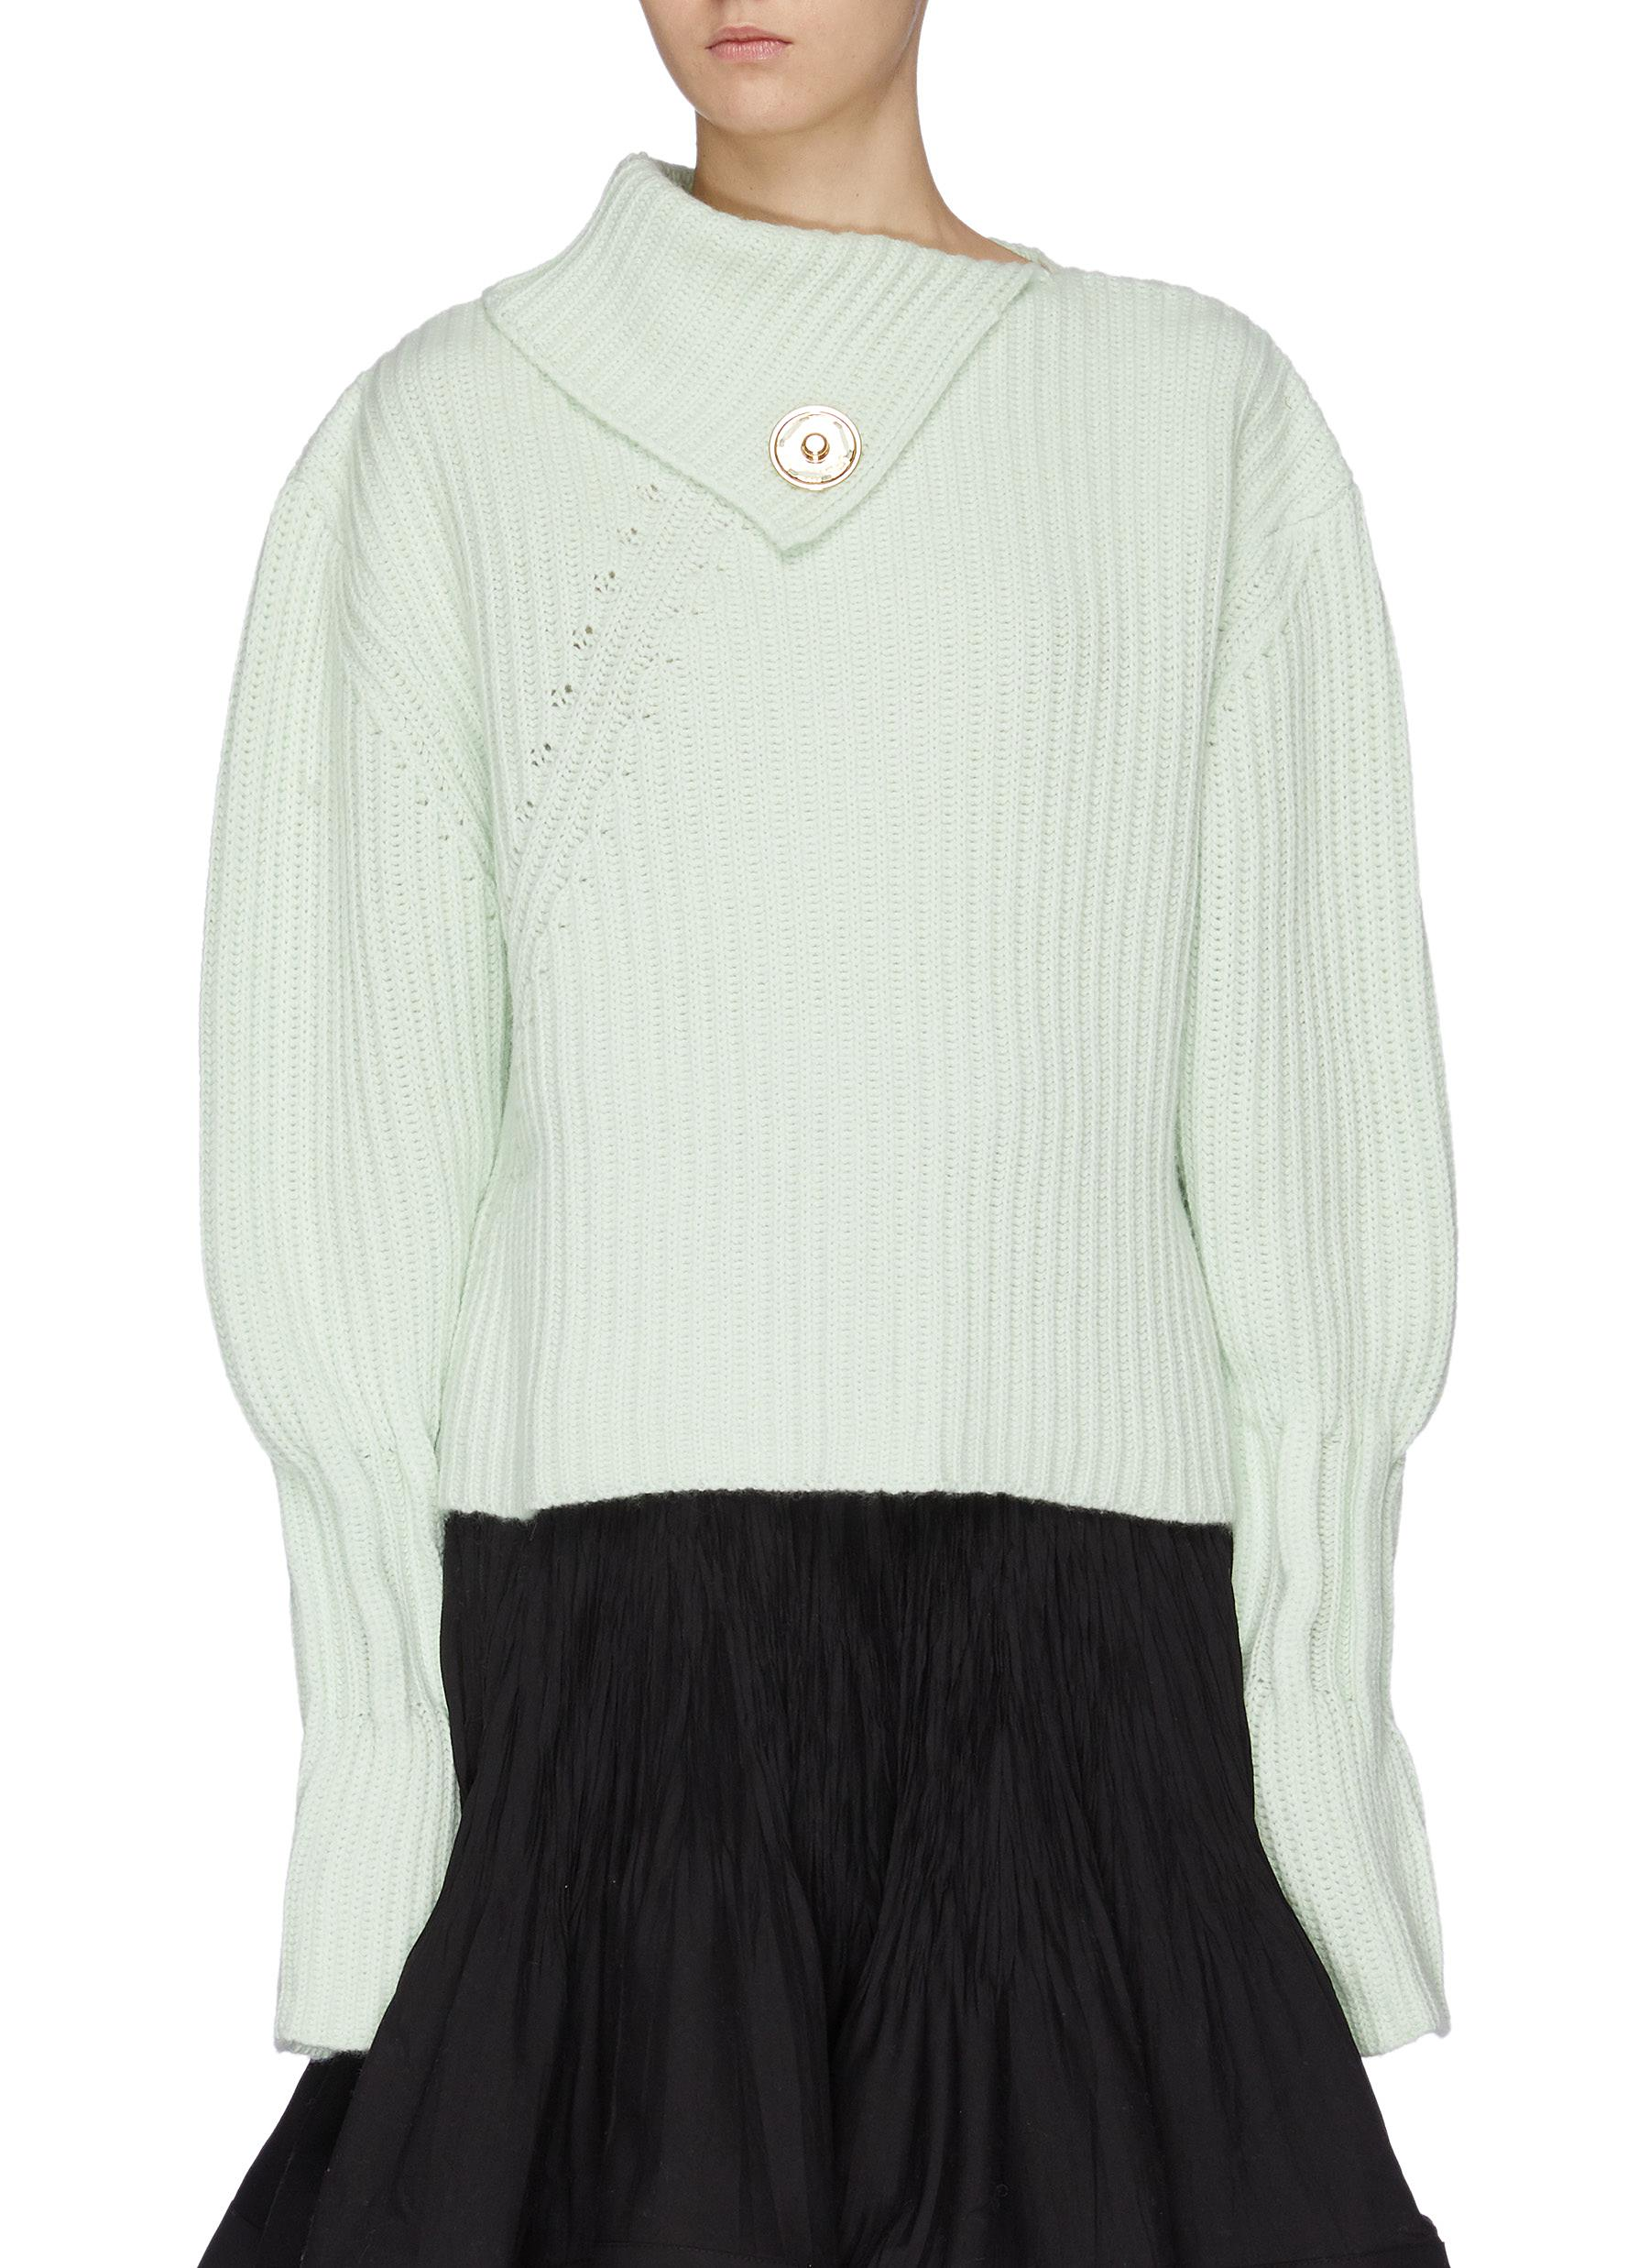 Folded collar bishop sleeve rib knit sweater by Jw Anderson